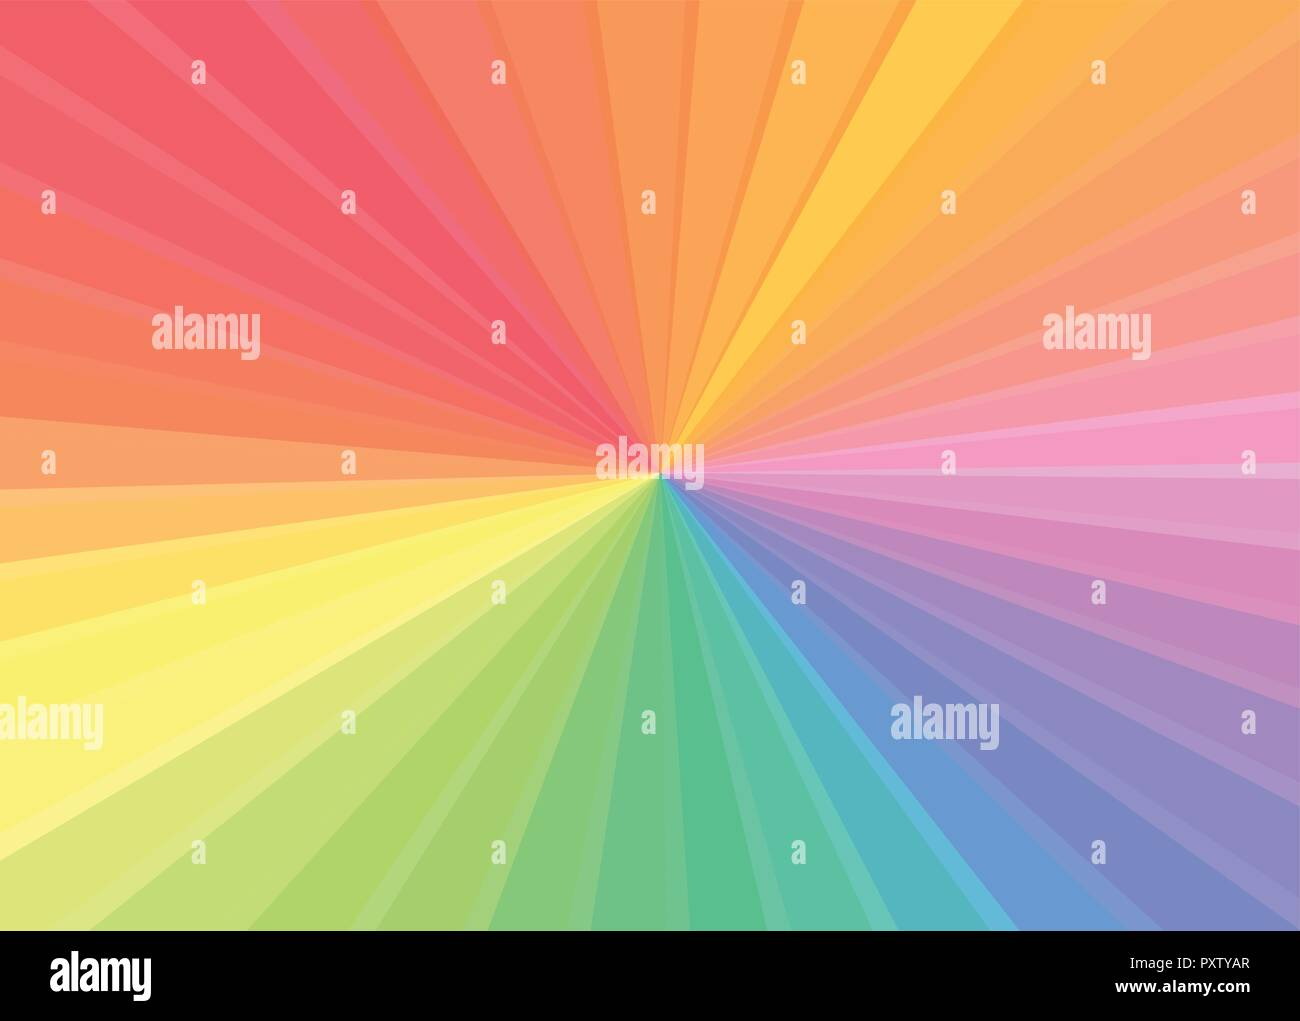 background template with rainbow colors illustration stock vector